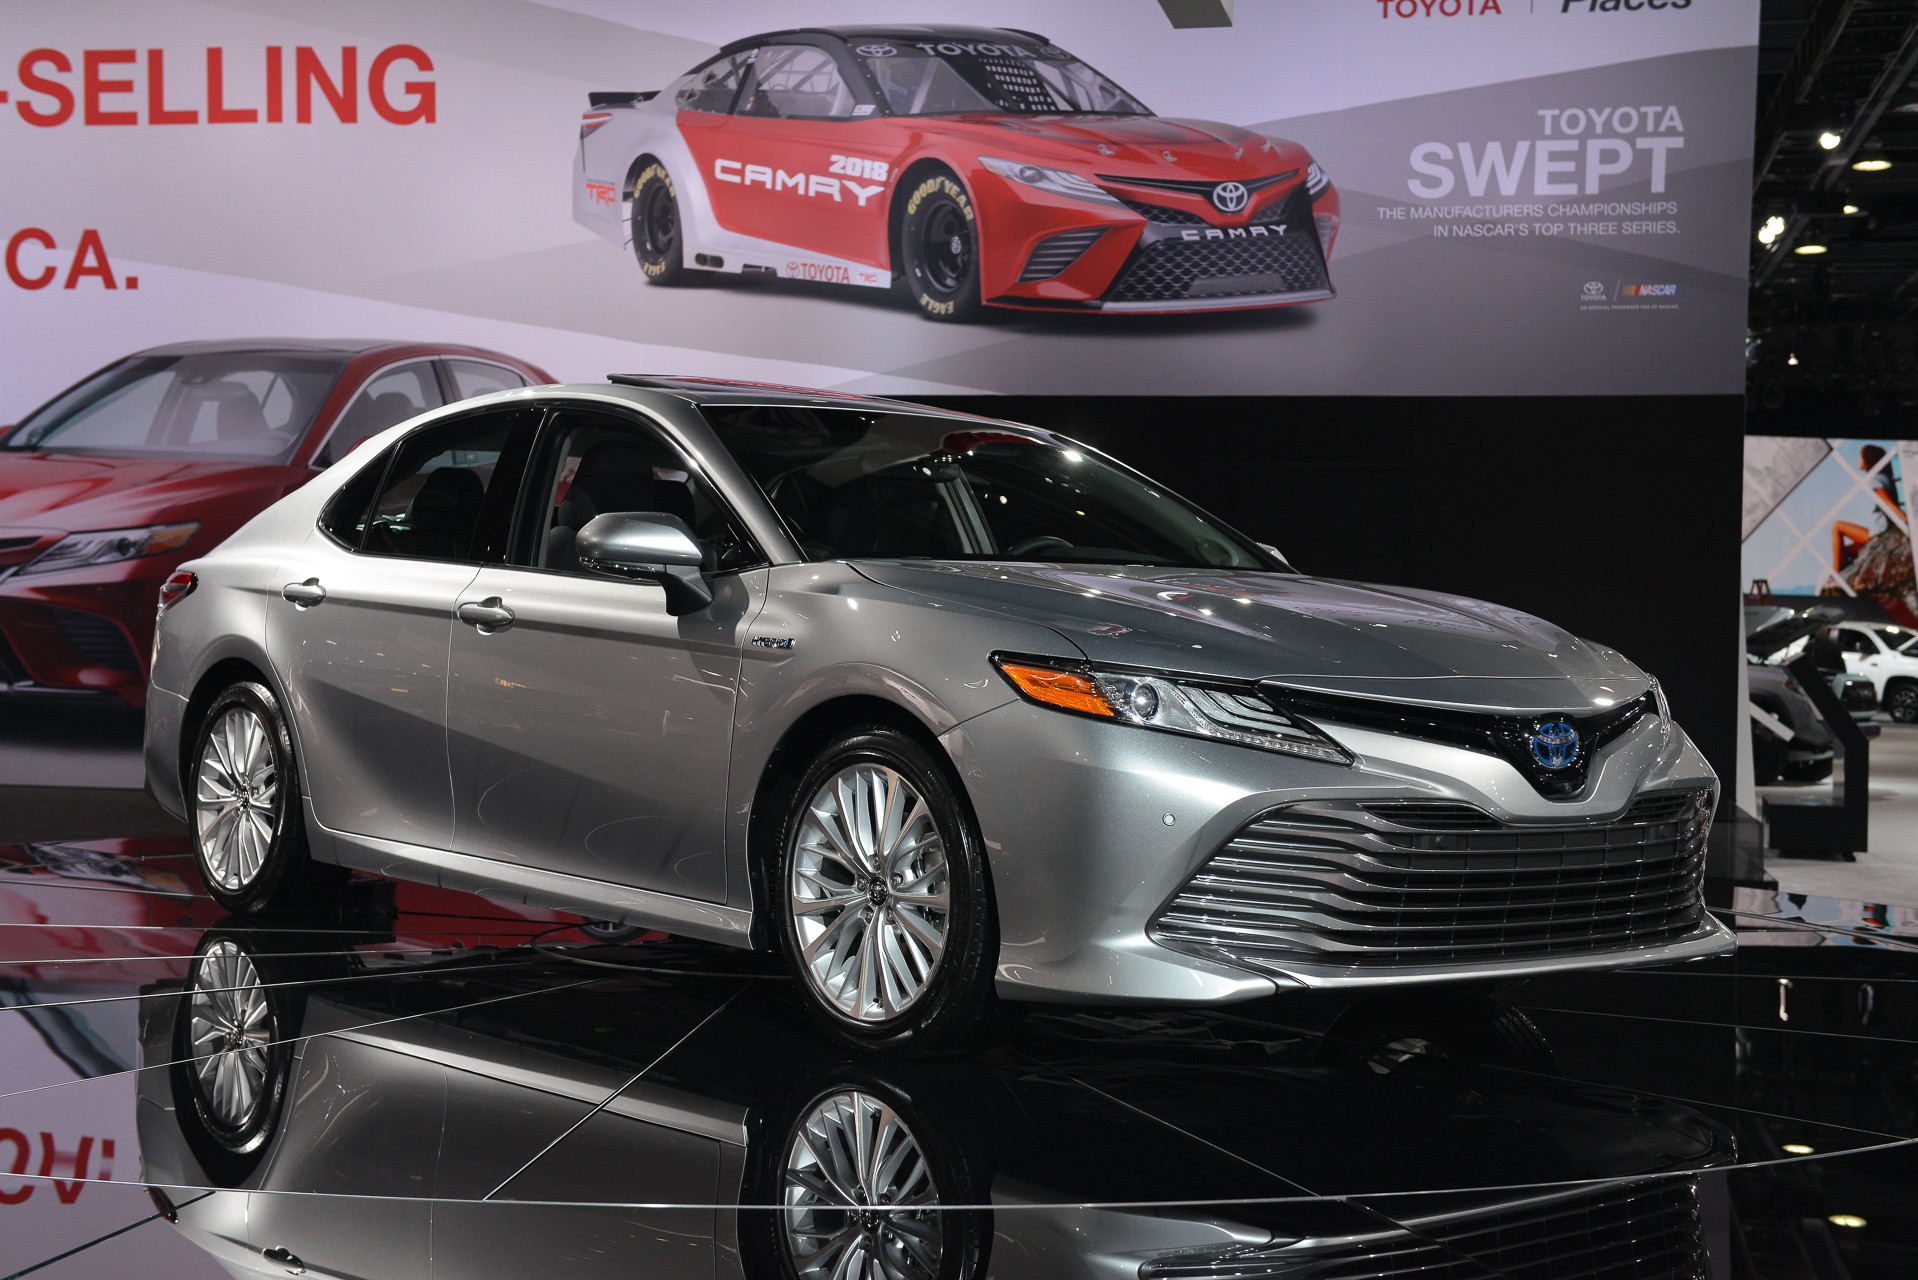 Camry Gas Mileage >> Download Image 2018 Toyota Camry Hybrid Gas Mileage